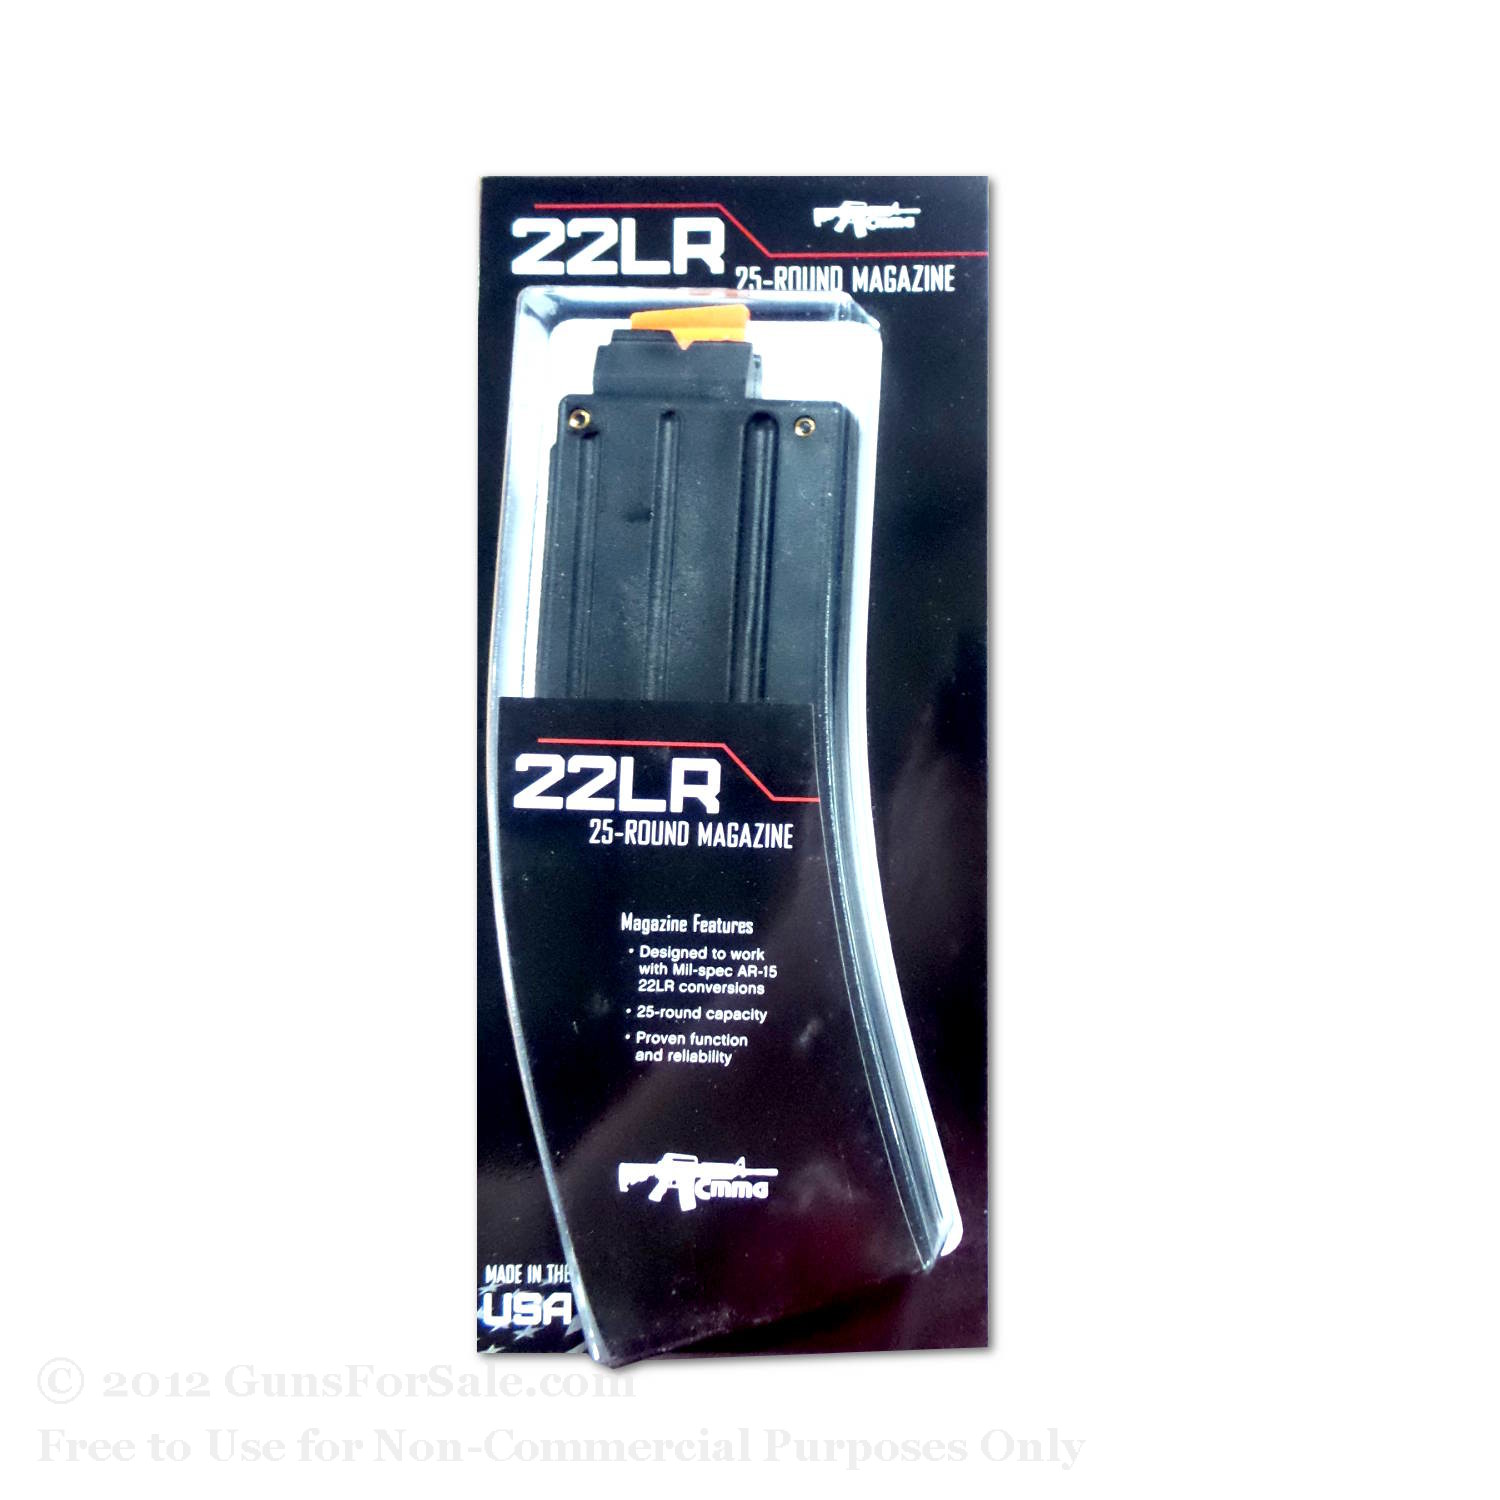 CMMG 22LR 26 Round Magazine for AR-15 Conversion Kit - 1